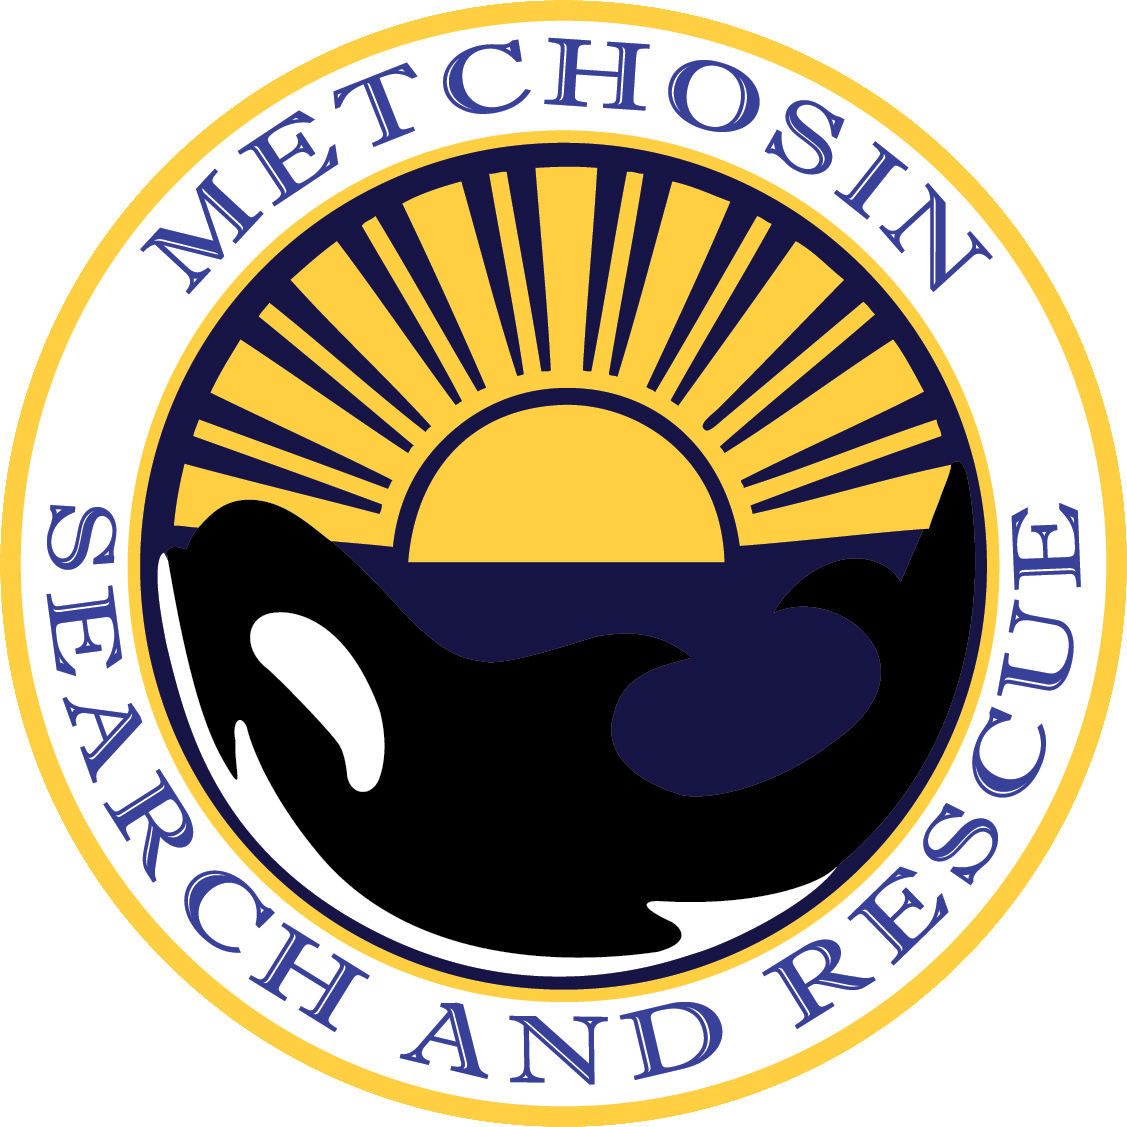 Metchosin Search and Rescue